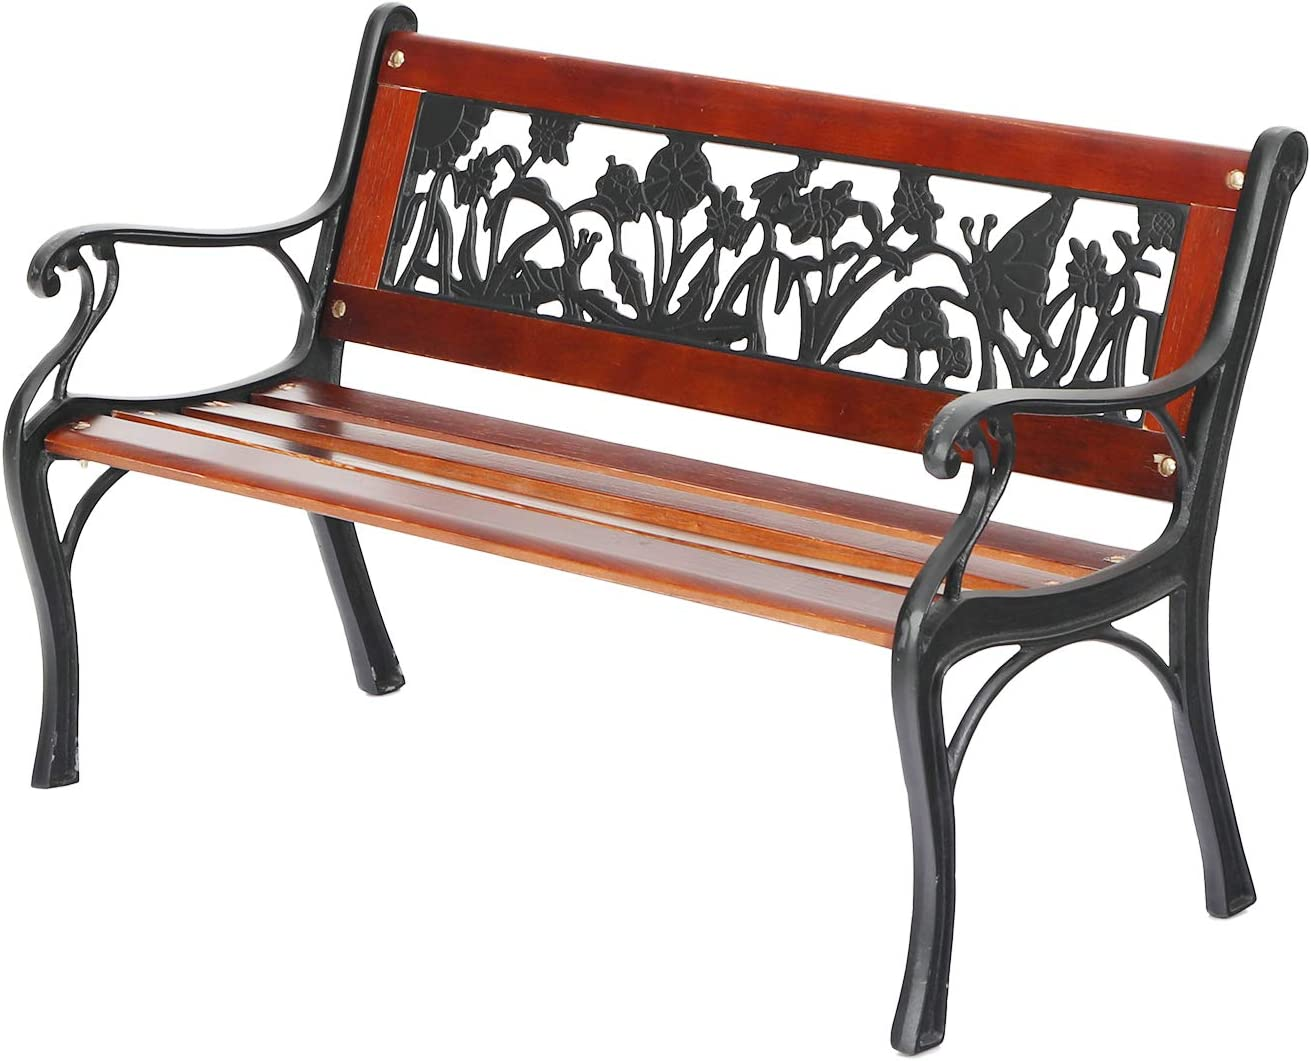 "PHI VILLA Outdoor Garden Bench for Children, 33""L Small Metal Bench with Wood Clearance Seating & Floral Pattern Back for Patio, Lawn, Balcony, Backyard, Porch and Indoor - Black"